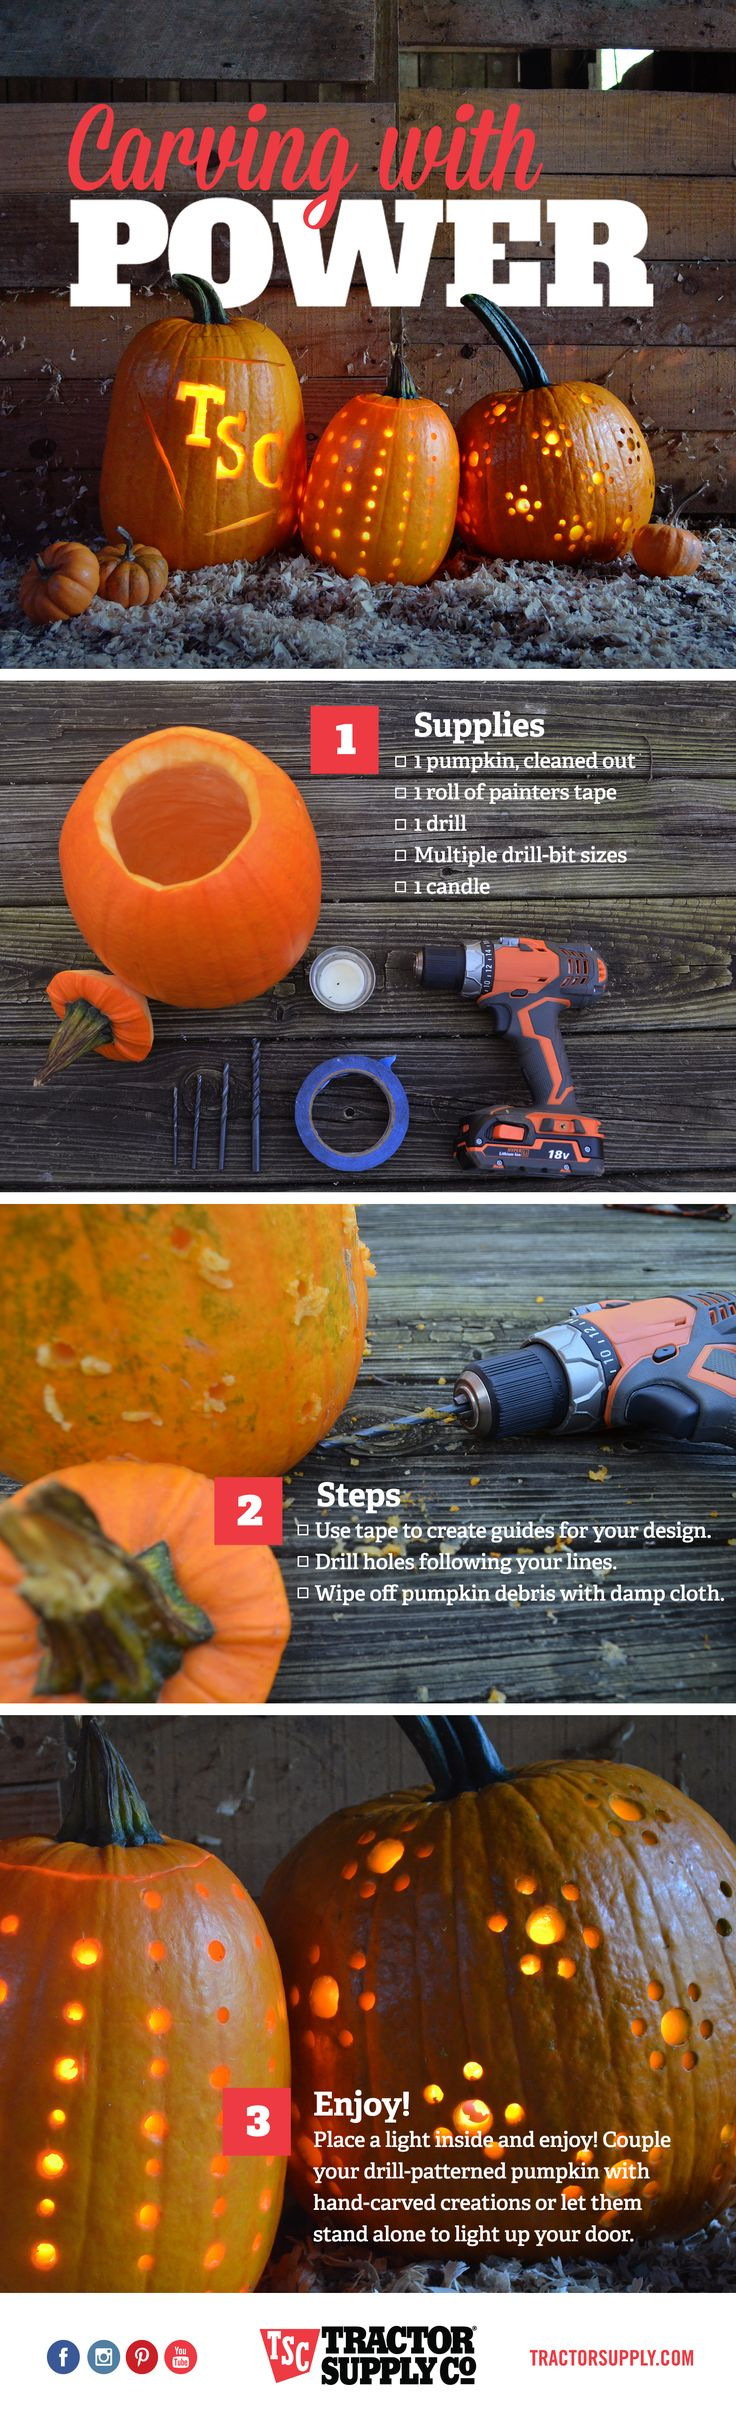 Try this new twist on a fall tradition! Carve your pumpkins with power tools in 3 easy steps.